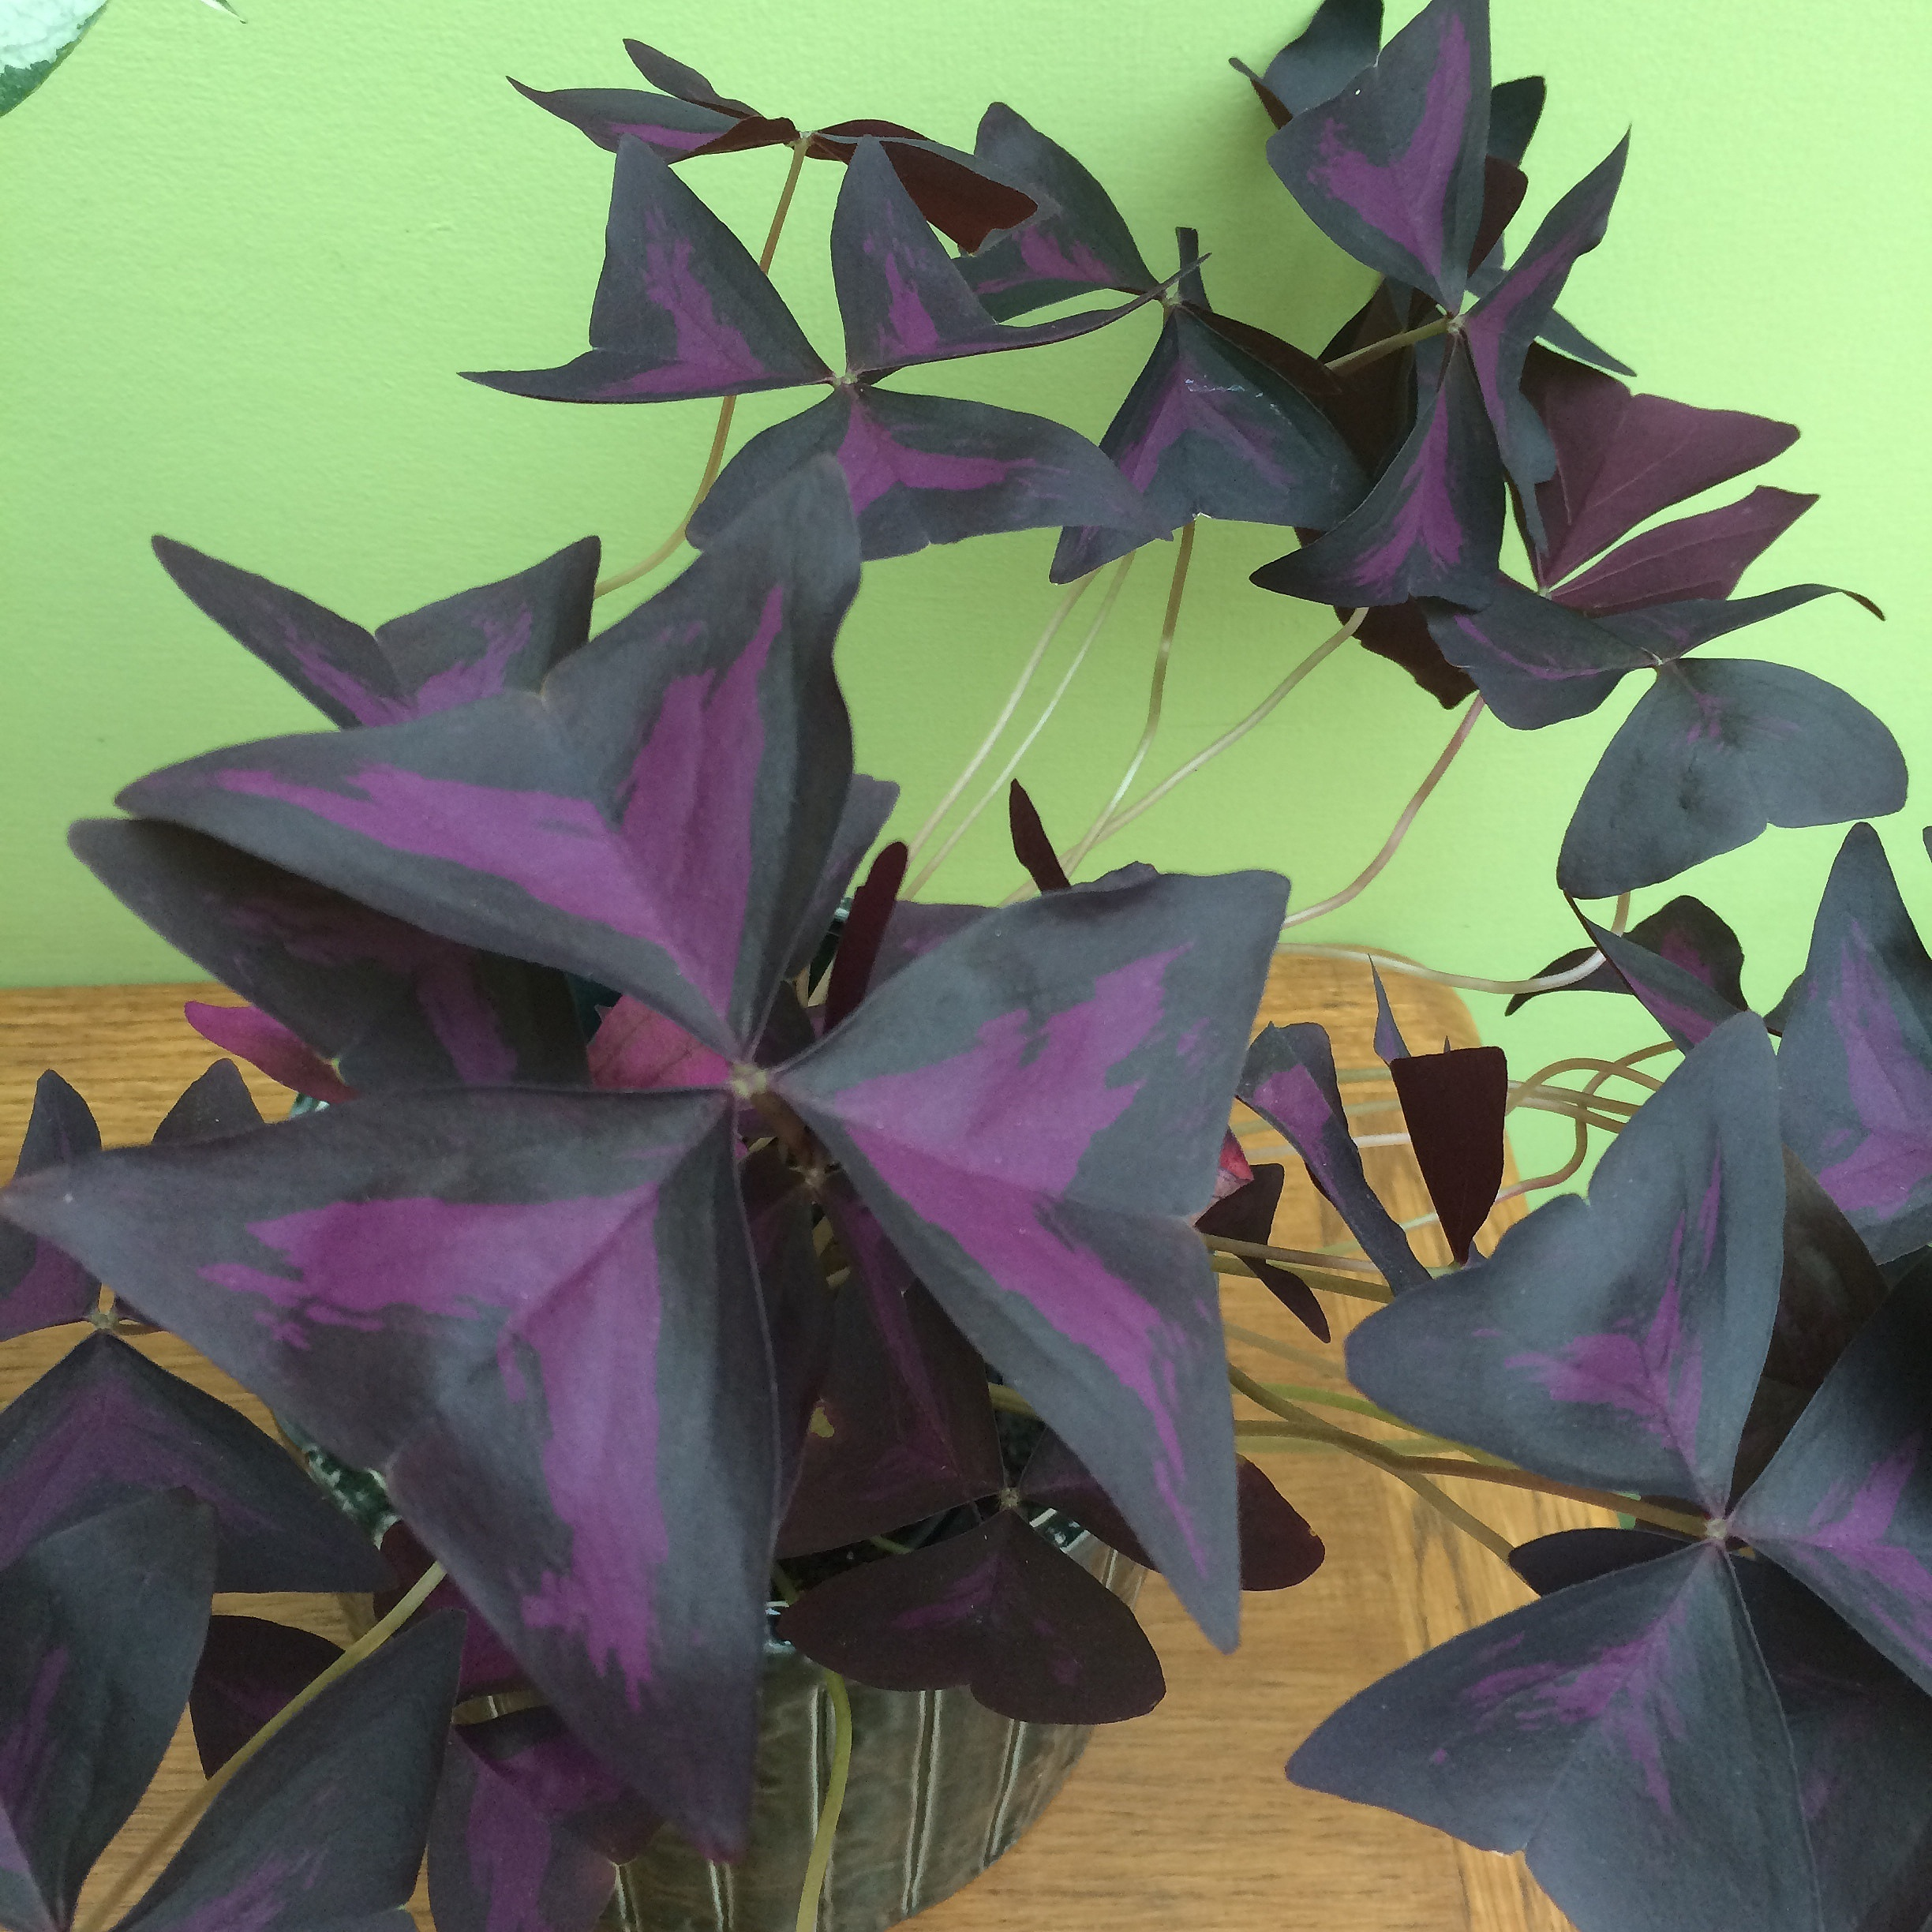 The leaves of  Oxalis triangularis  are edible and delicious - a bit like sorrel but sweeter and even more lemony! Photograph: Jane Perrone.